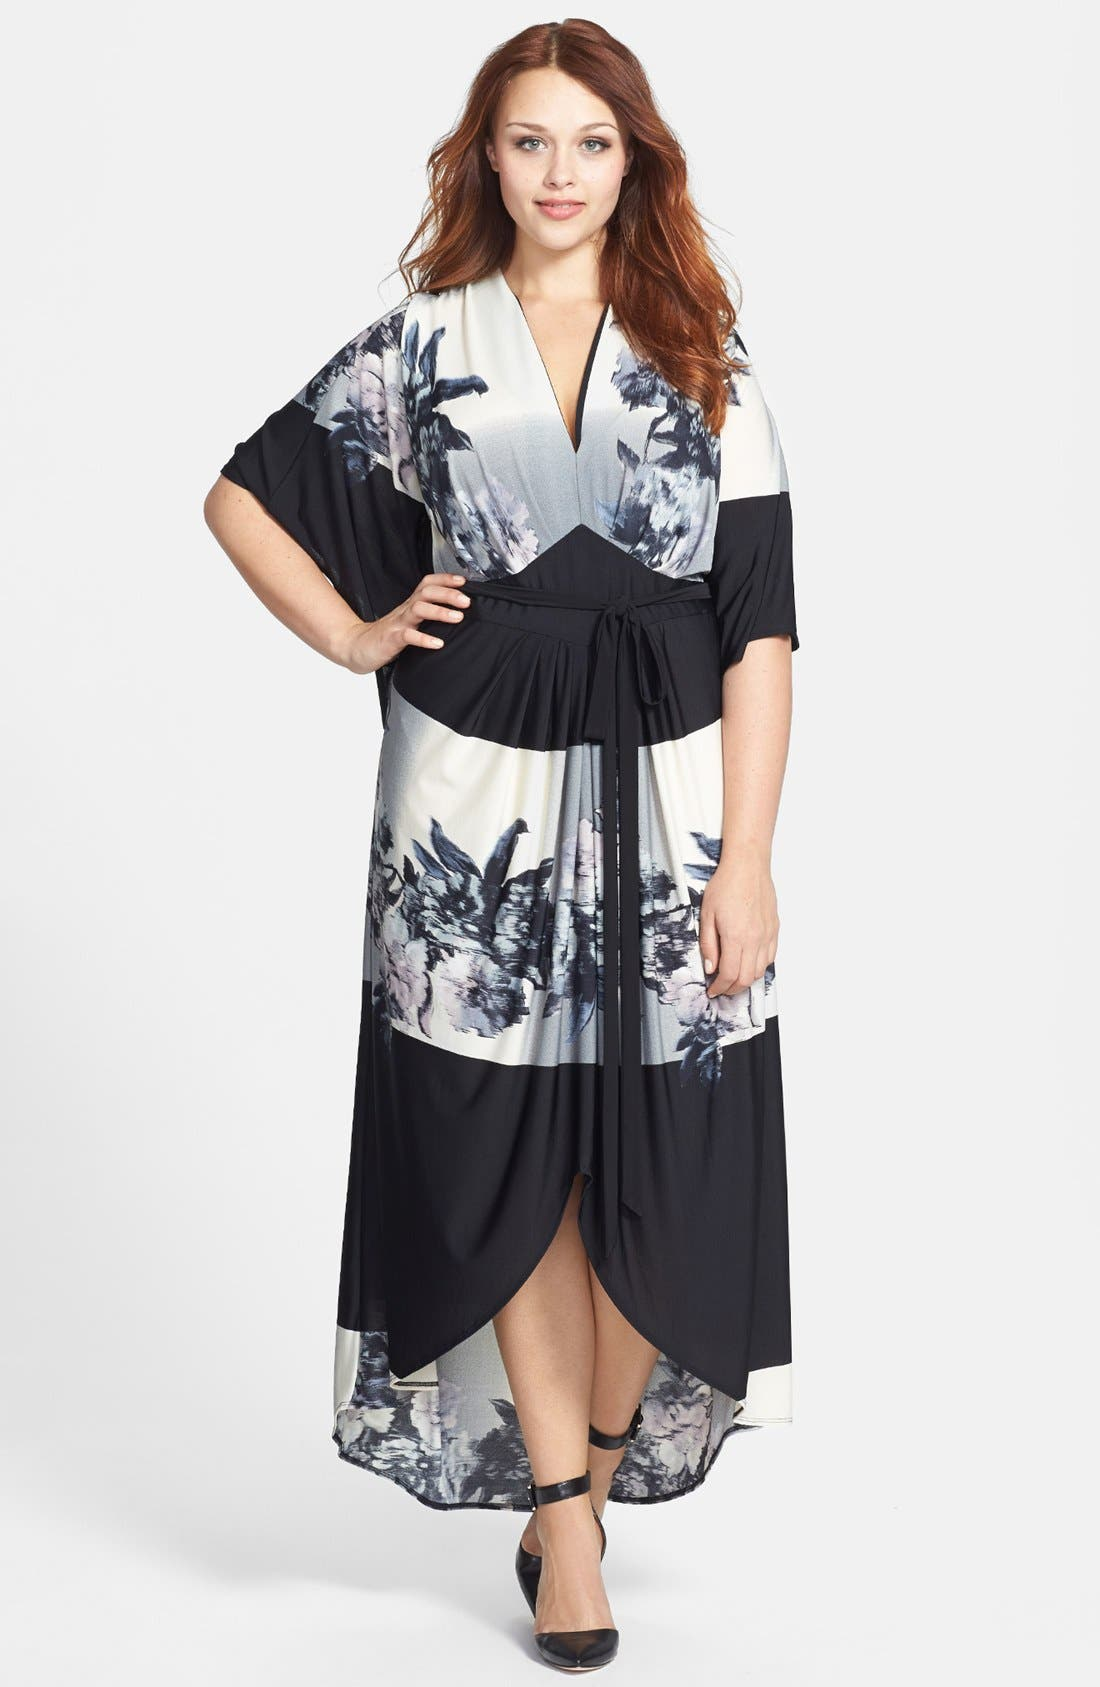 Alternate Image 1 Selected - ABS by Allen Schwartz 'Kaftan' Printed High/Low Maxi Dress (Plus Size)